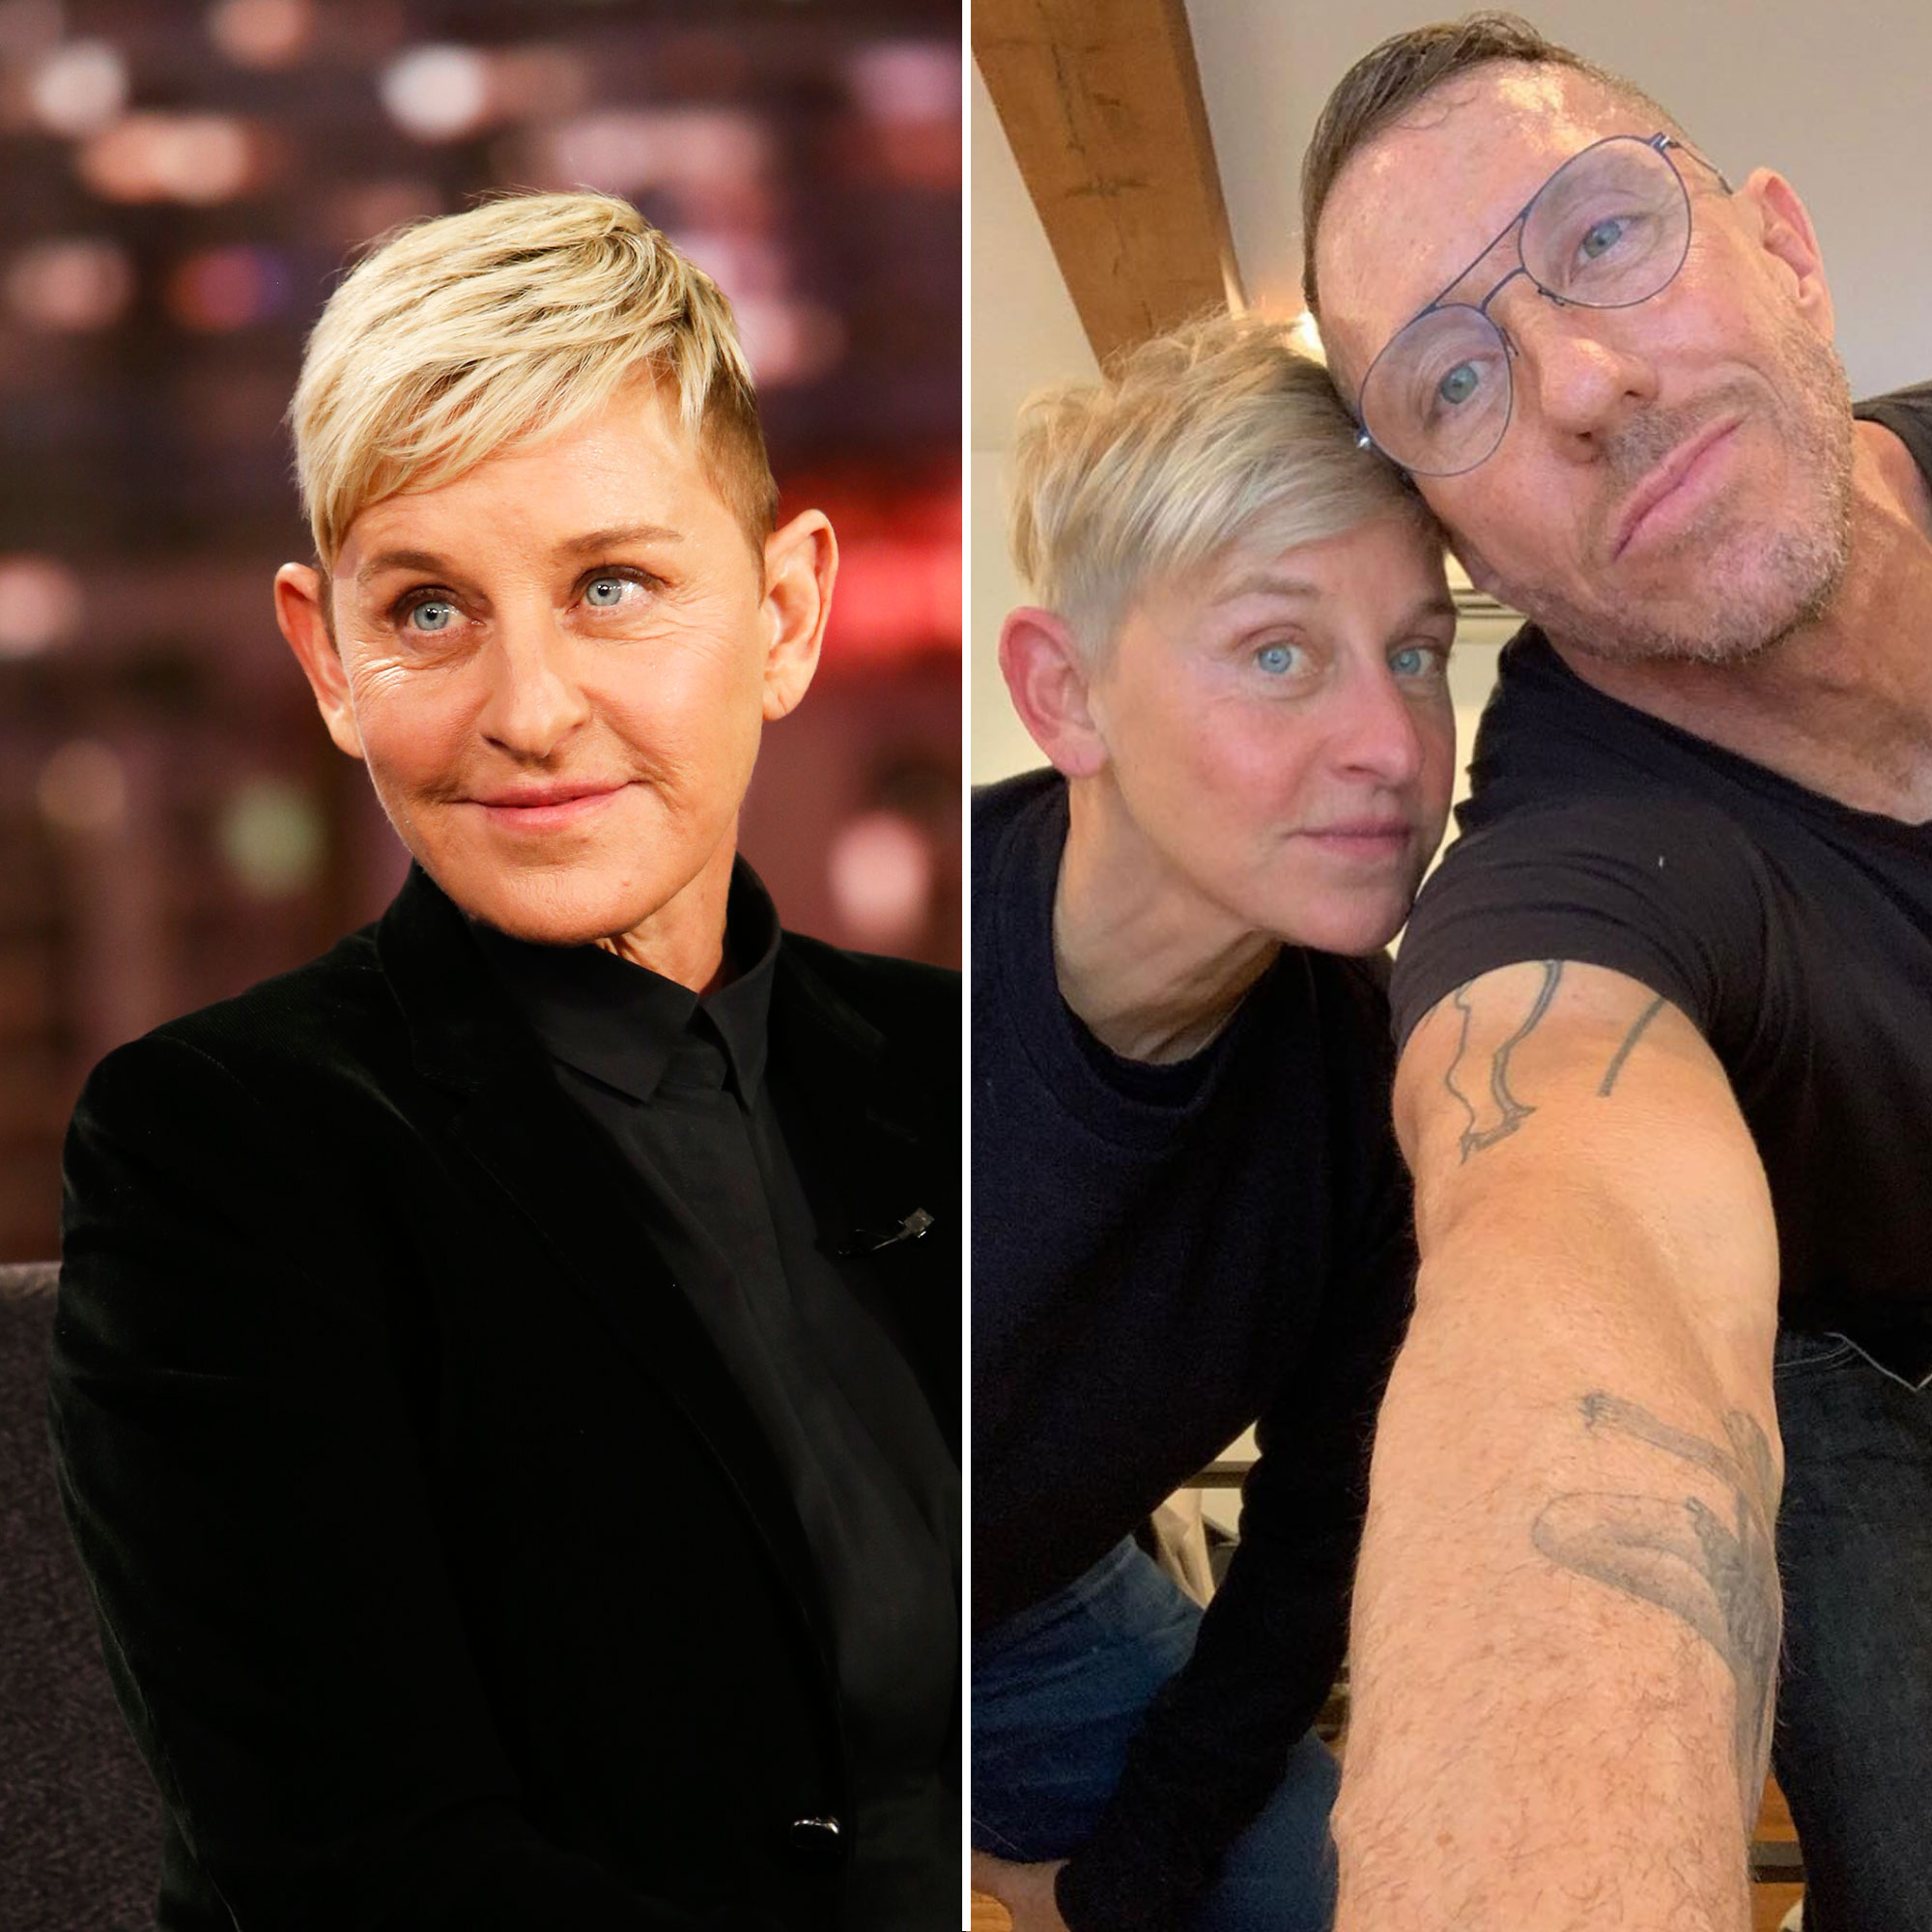 Ellen DeGeneres and More Stars Have Debuted Fresh New Hairstyles - Superstar hairstylist Chris McMillan gave the talk show host a cool undercut on March 20 for a fresh new take on her usual style.